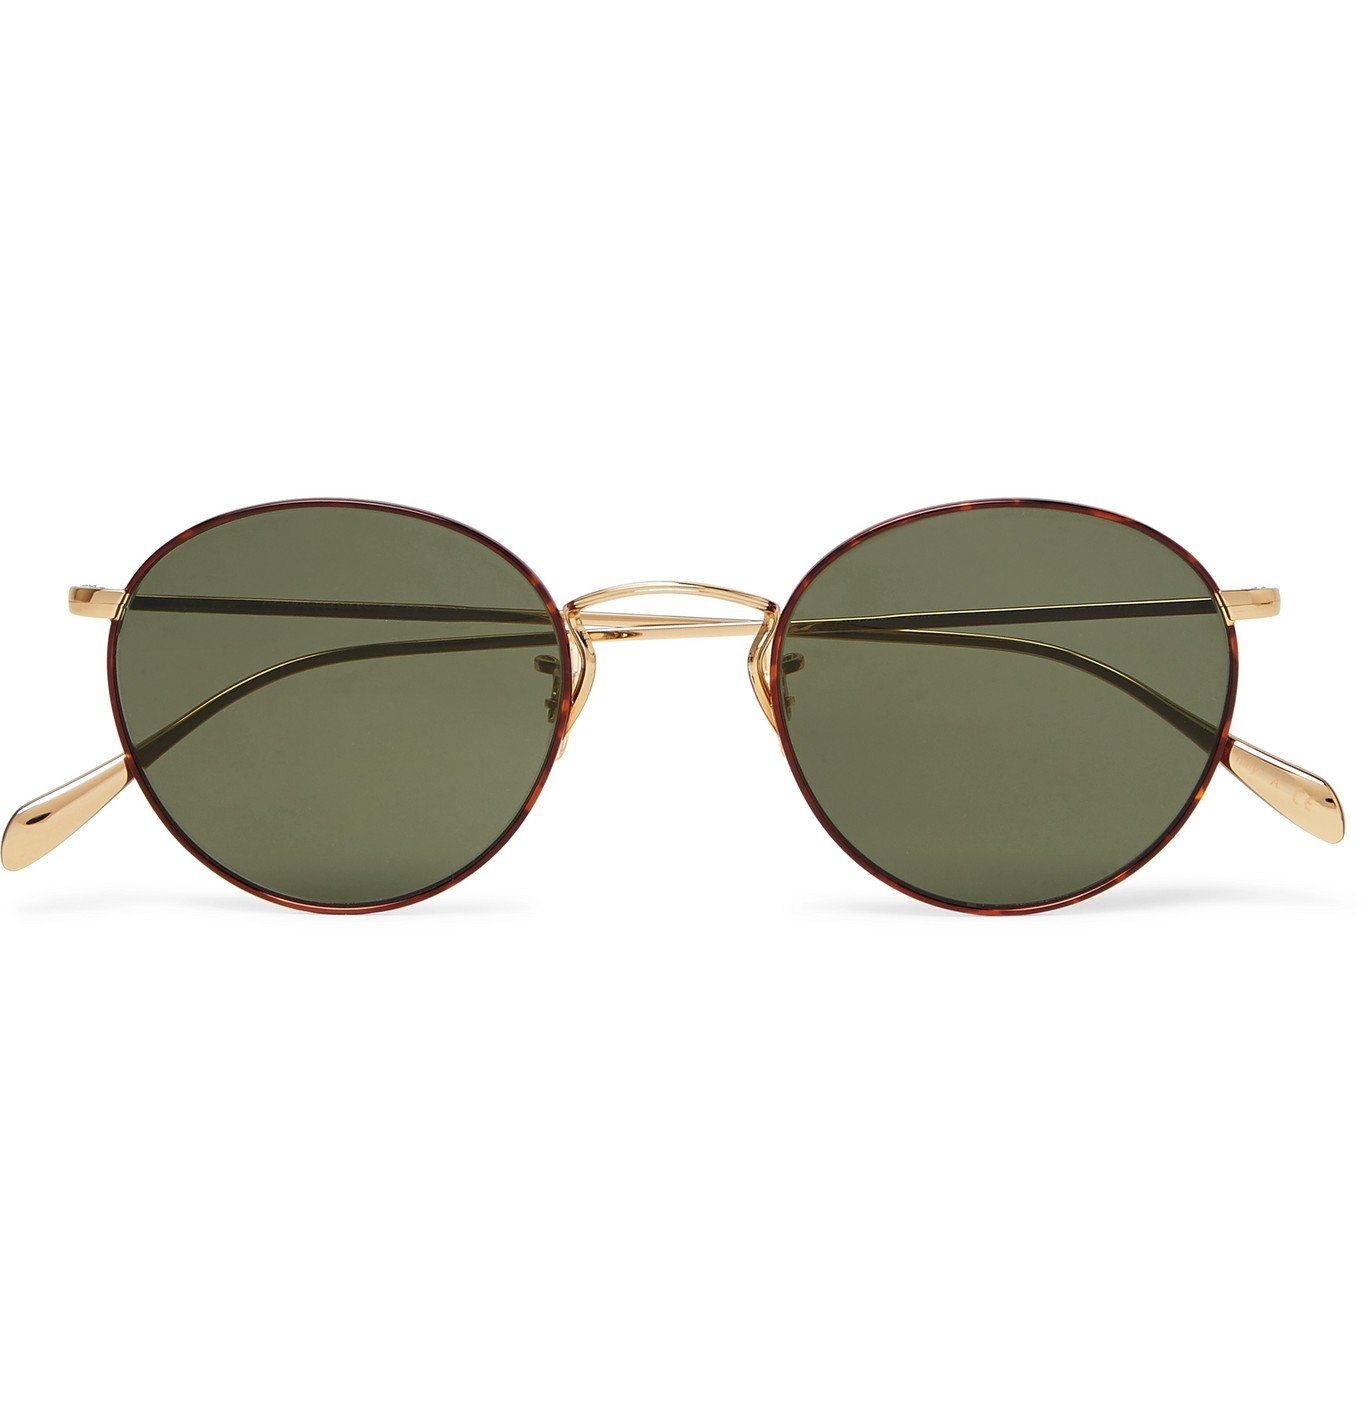 Oliver Peoples - Round-Frame Tortoiseshell Acetate and Gold-Tone Sunglasses - Gold